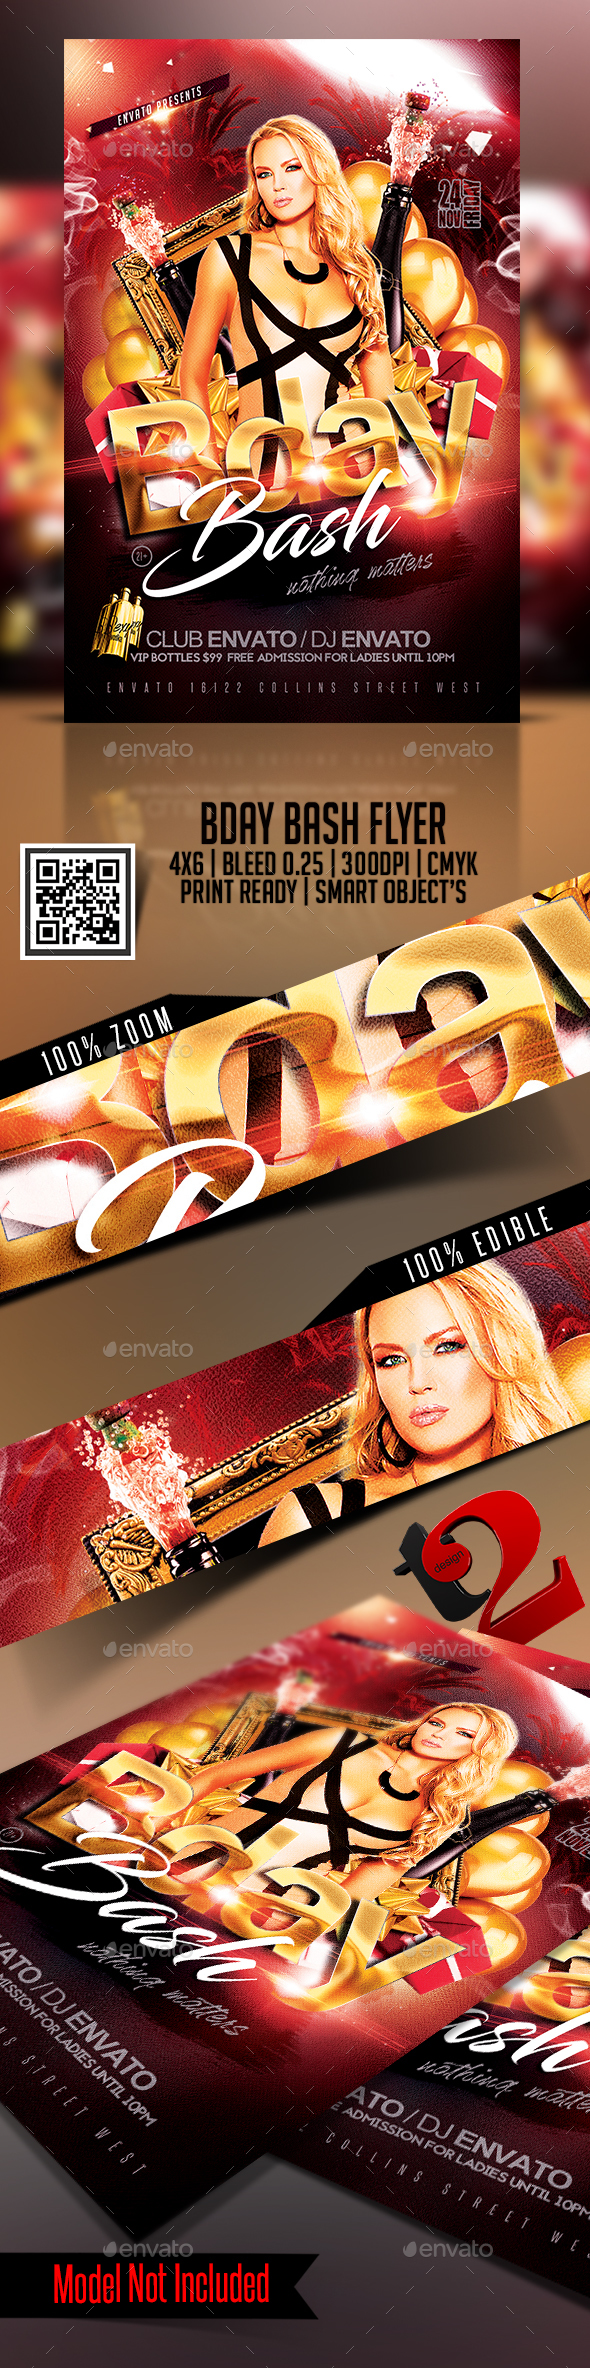 Bday Bash Flyer Template - Clubs & Parties Events